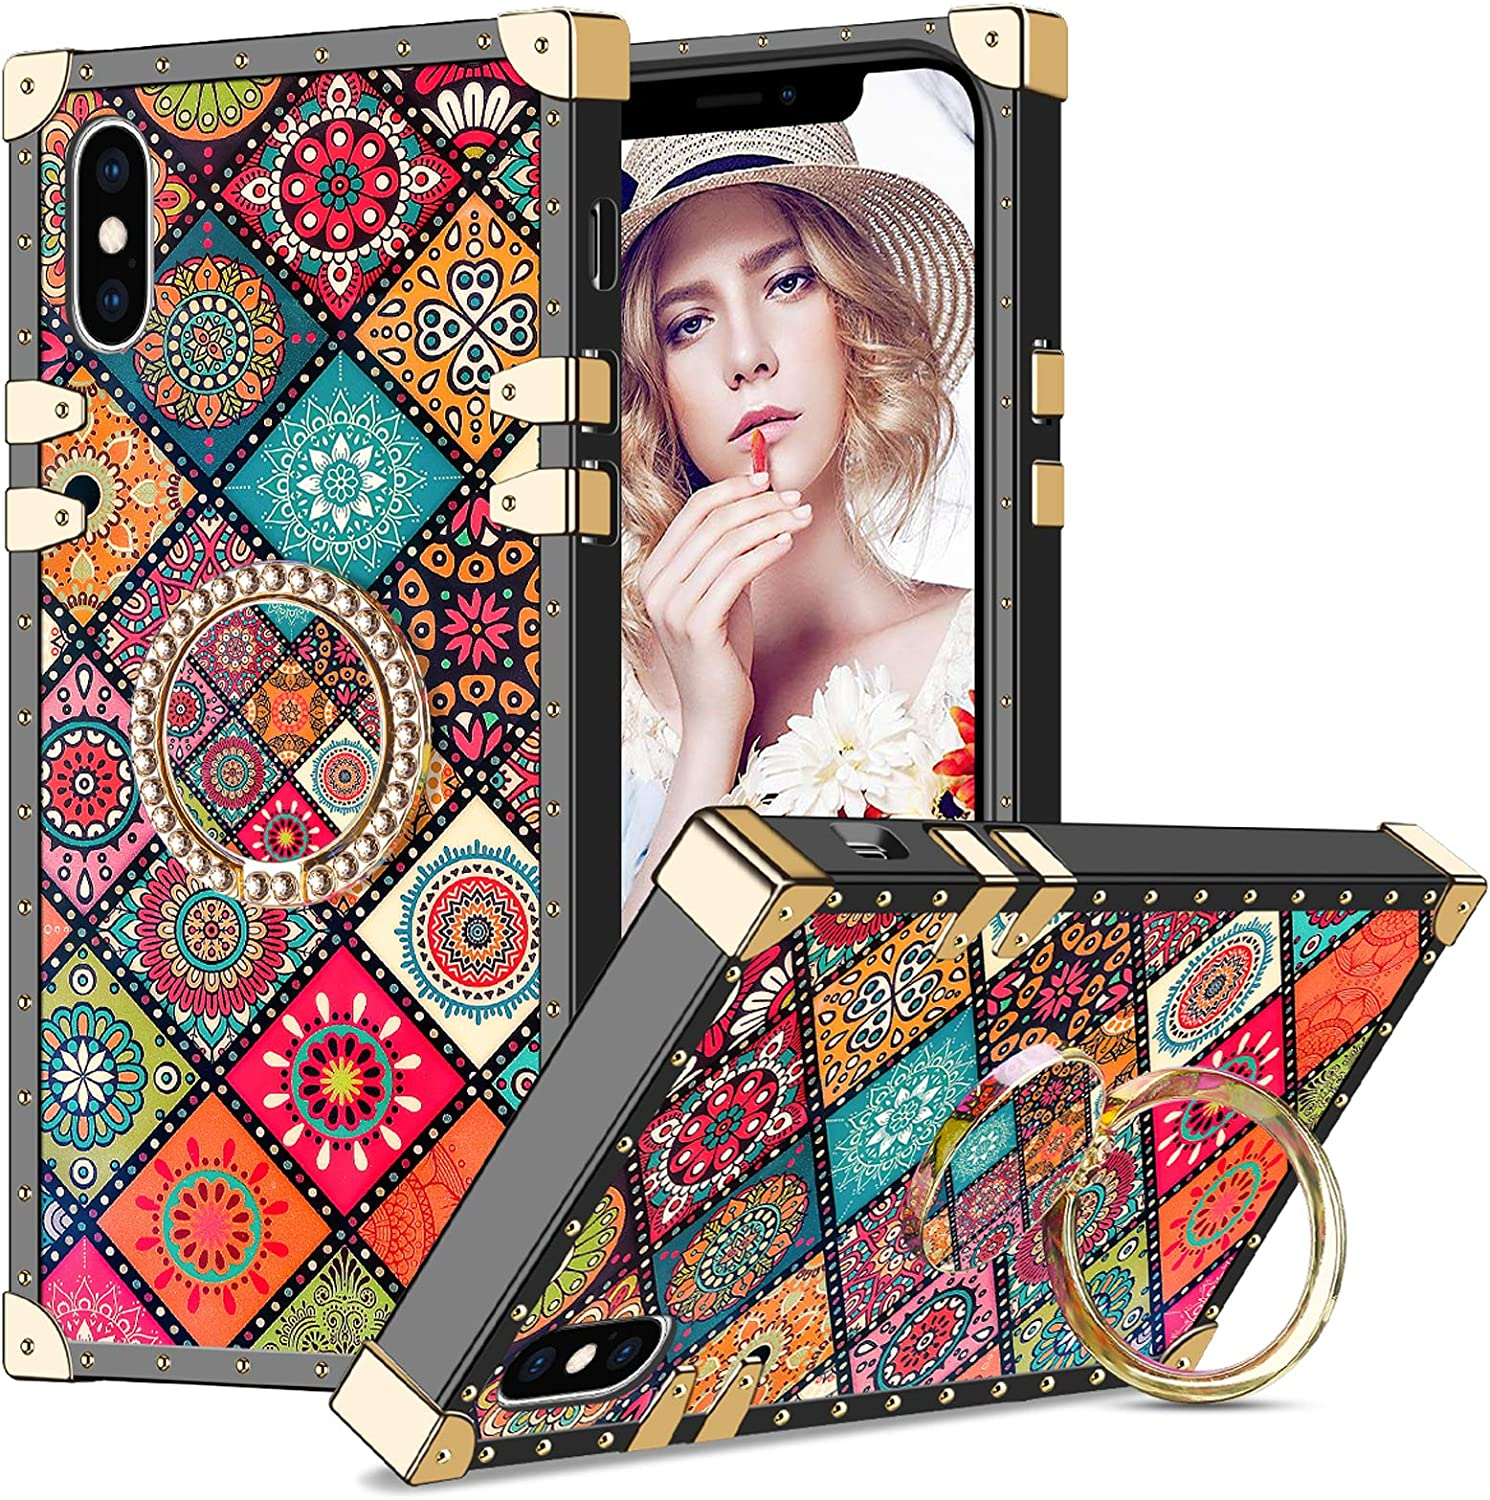 Wollony Square Case for iPhone X with Kickstand Ring Holder Luxury Retro Design for Women Girls Soft TPU Full Body Shockproof Protective Cover for iPhone Xs/X 5.8 inch Mandala